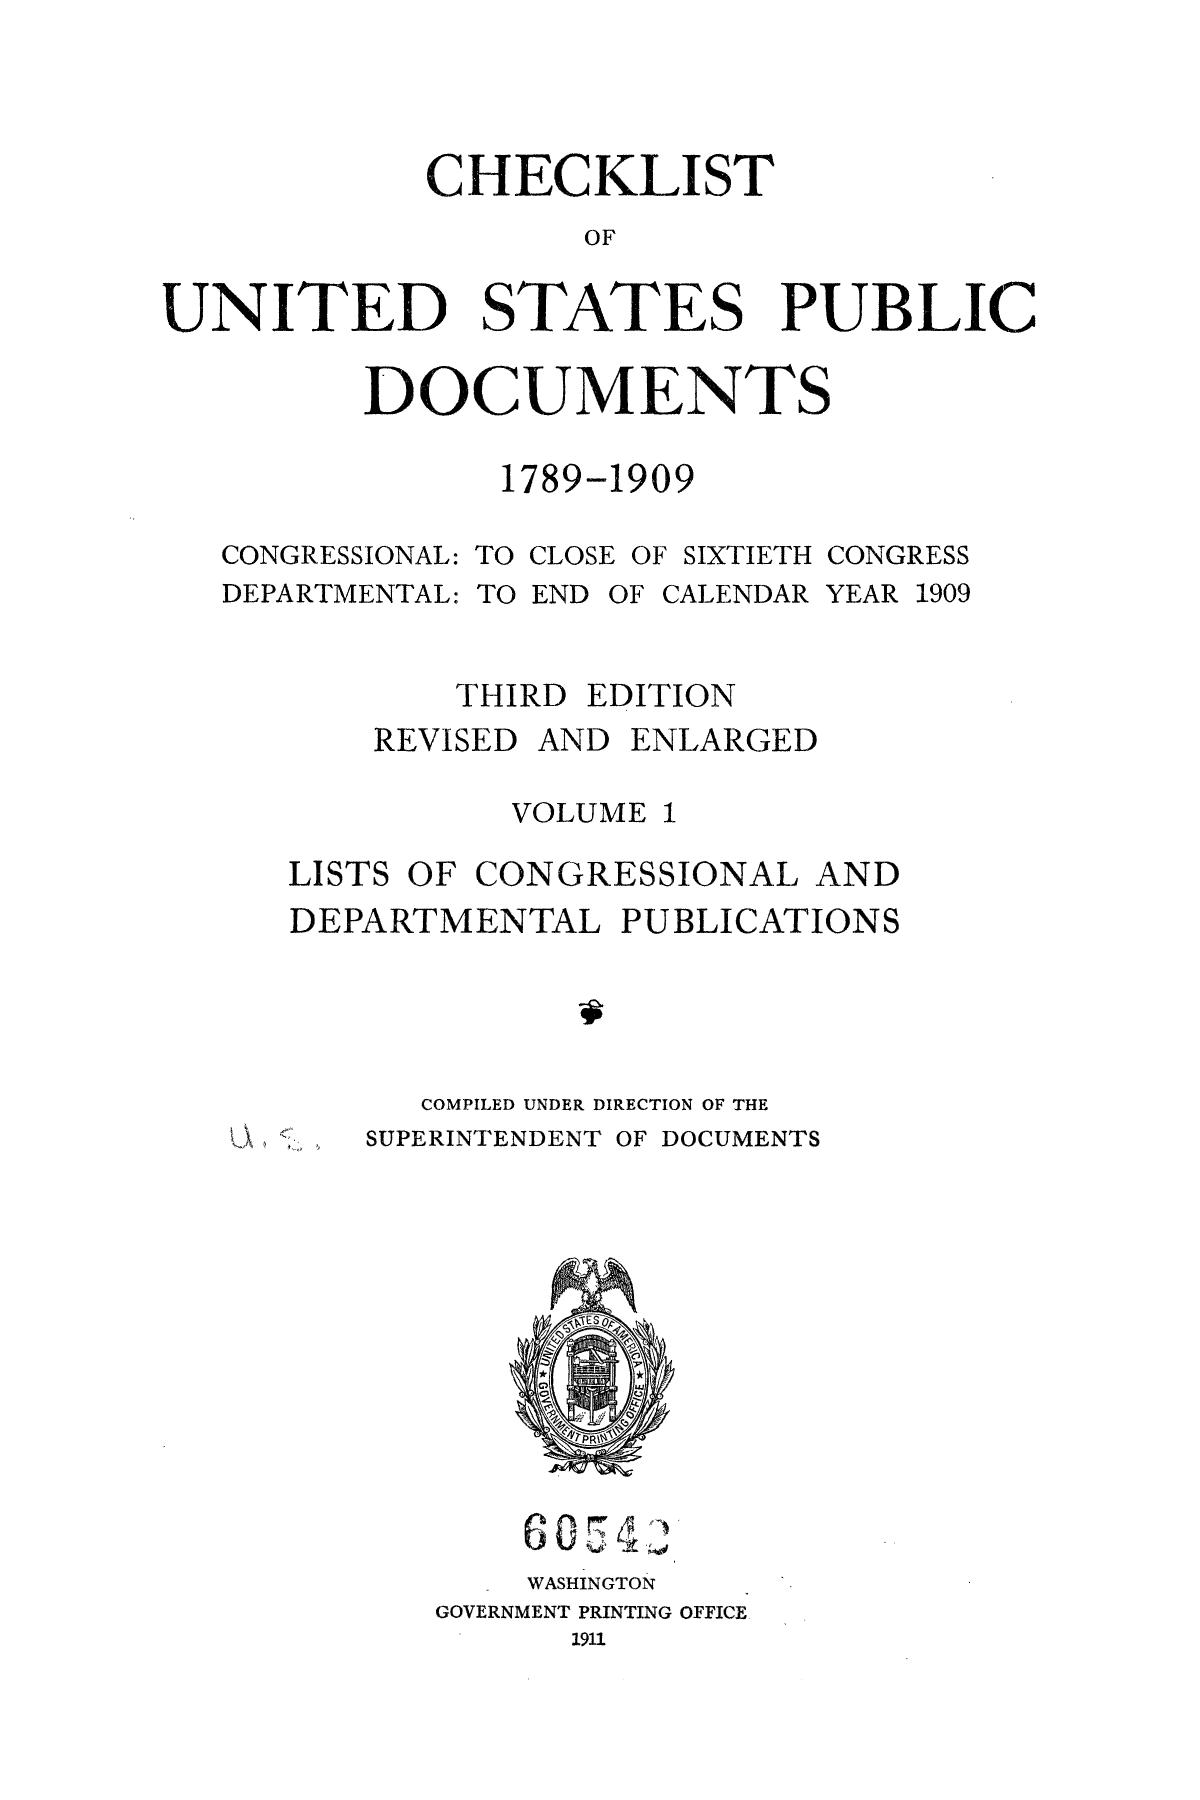 Checklist of United States Public Documents, 1789-1909, Third Edition Revised and Enlarged, Volume 1, Lists of Congressional and Departmental Publications                                                                                                      I